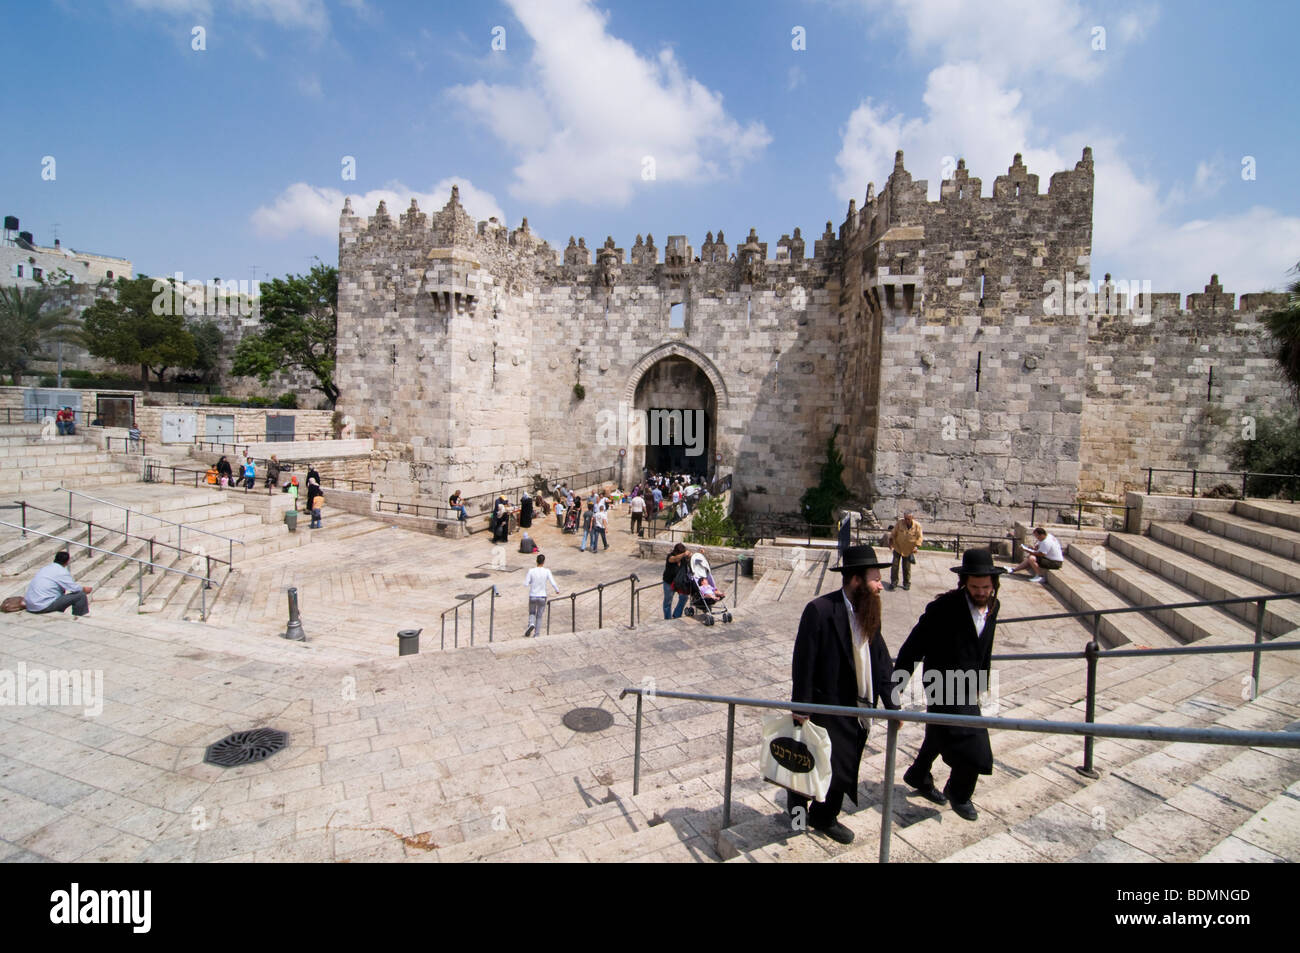 Hasidic Jews on the steps at the Damascus Gate to the Old City of Jerusalem. - Stock Image